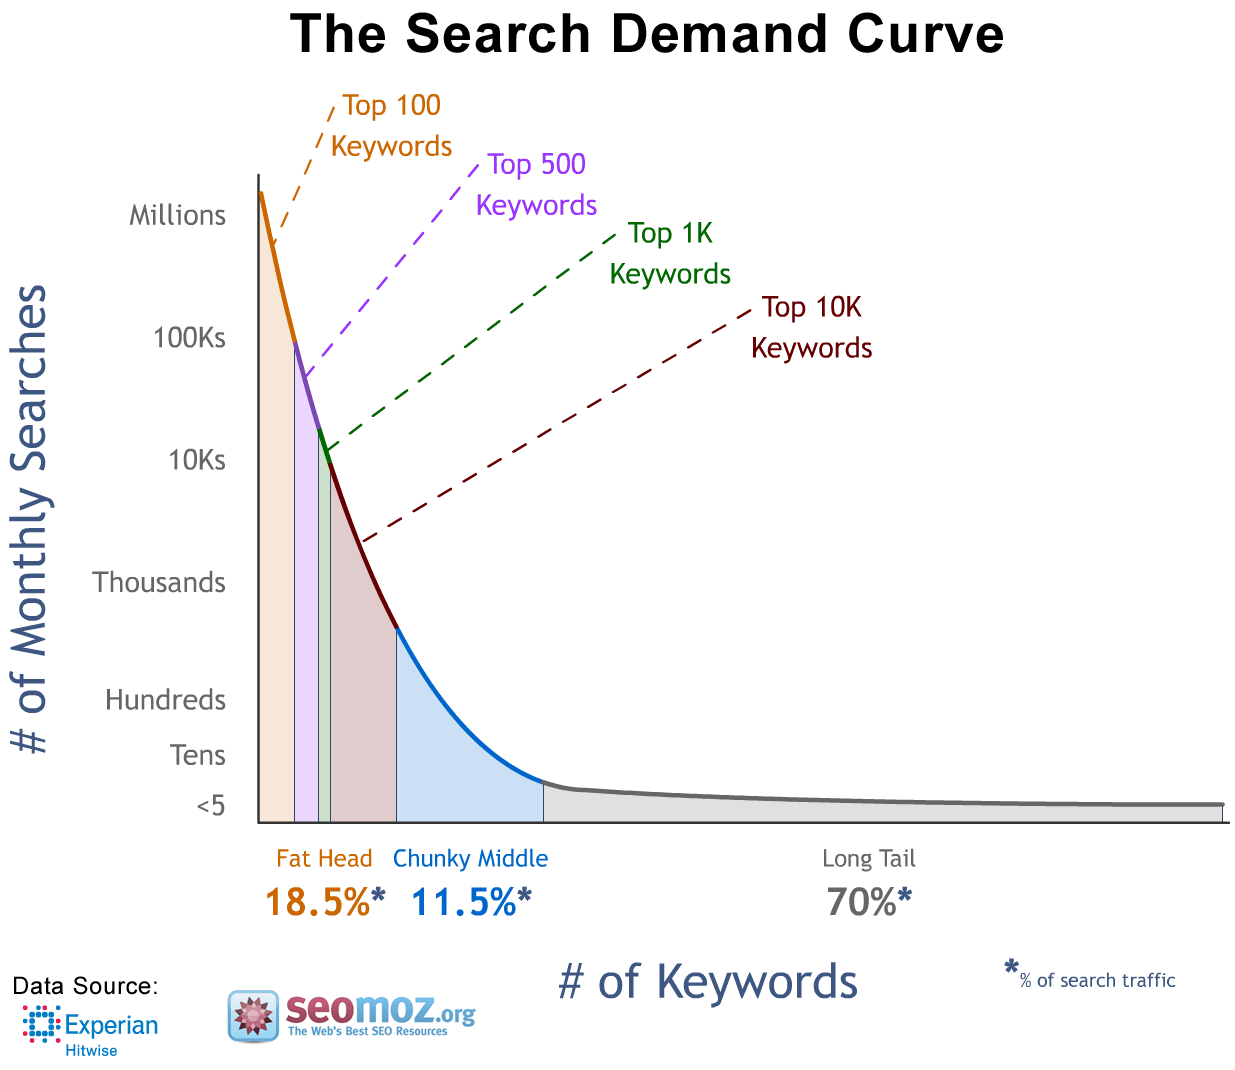 longtail keyword search popularity chart